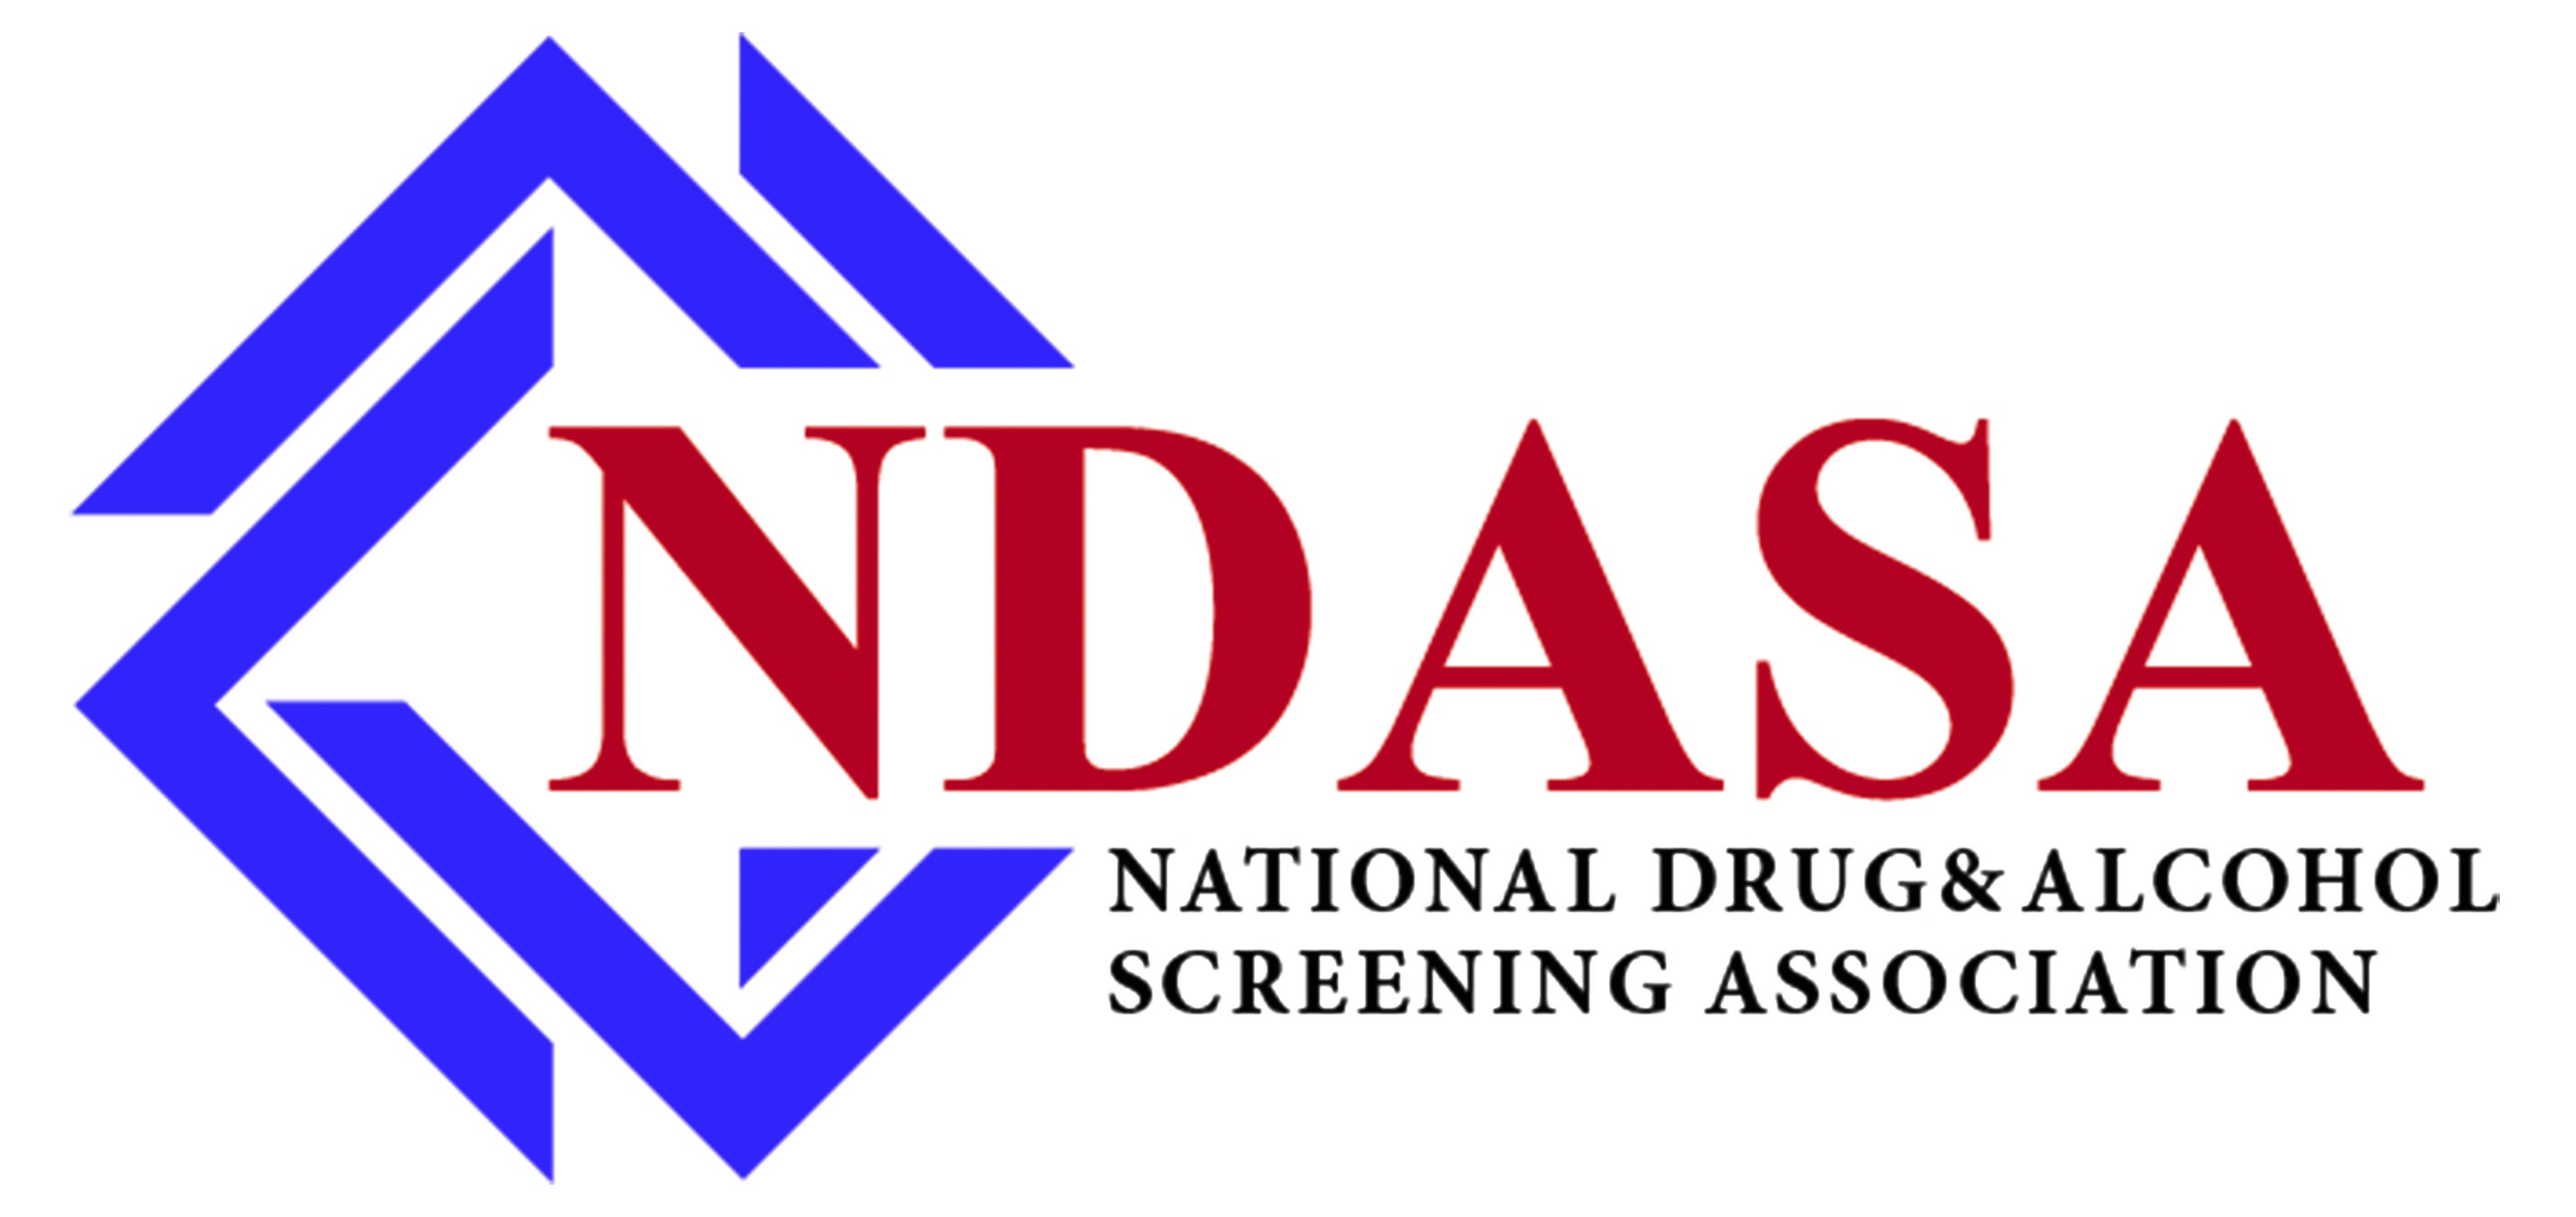 The National Drug And Alcohol Screening Association Announces Its 2020 Conference and Tradeshow to be Held in Jacksonville, Florida March 9-11